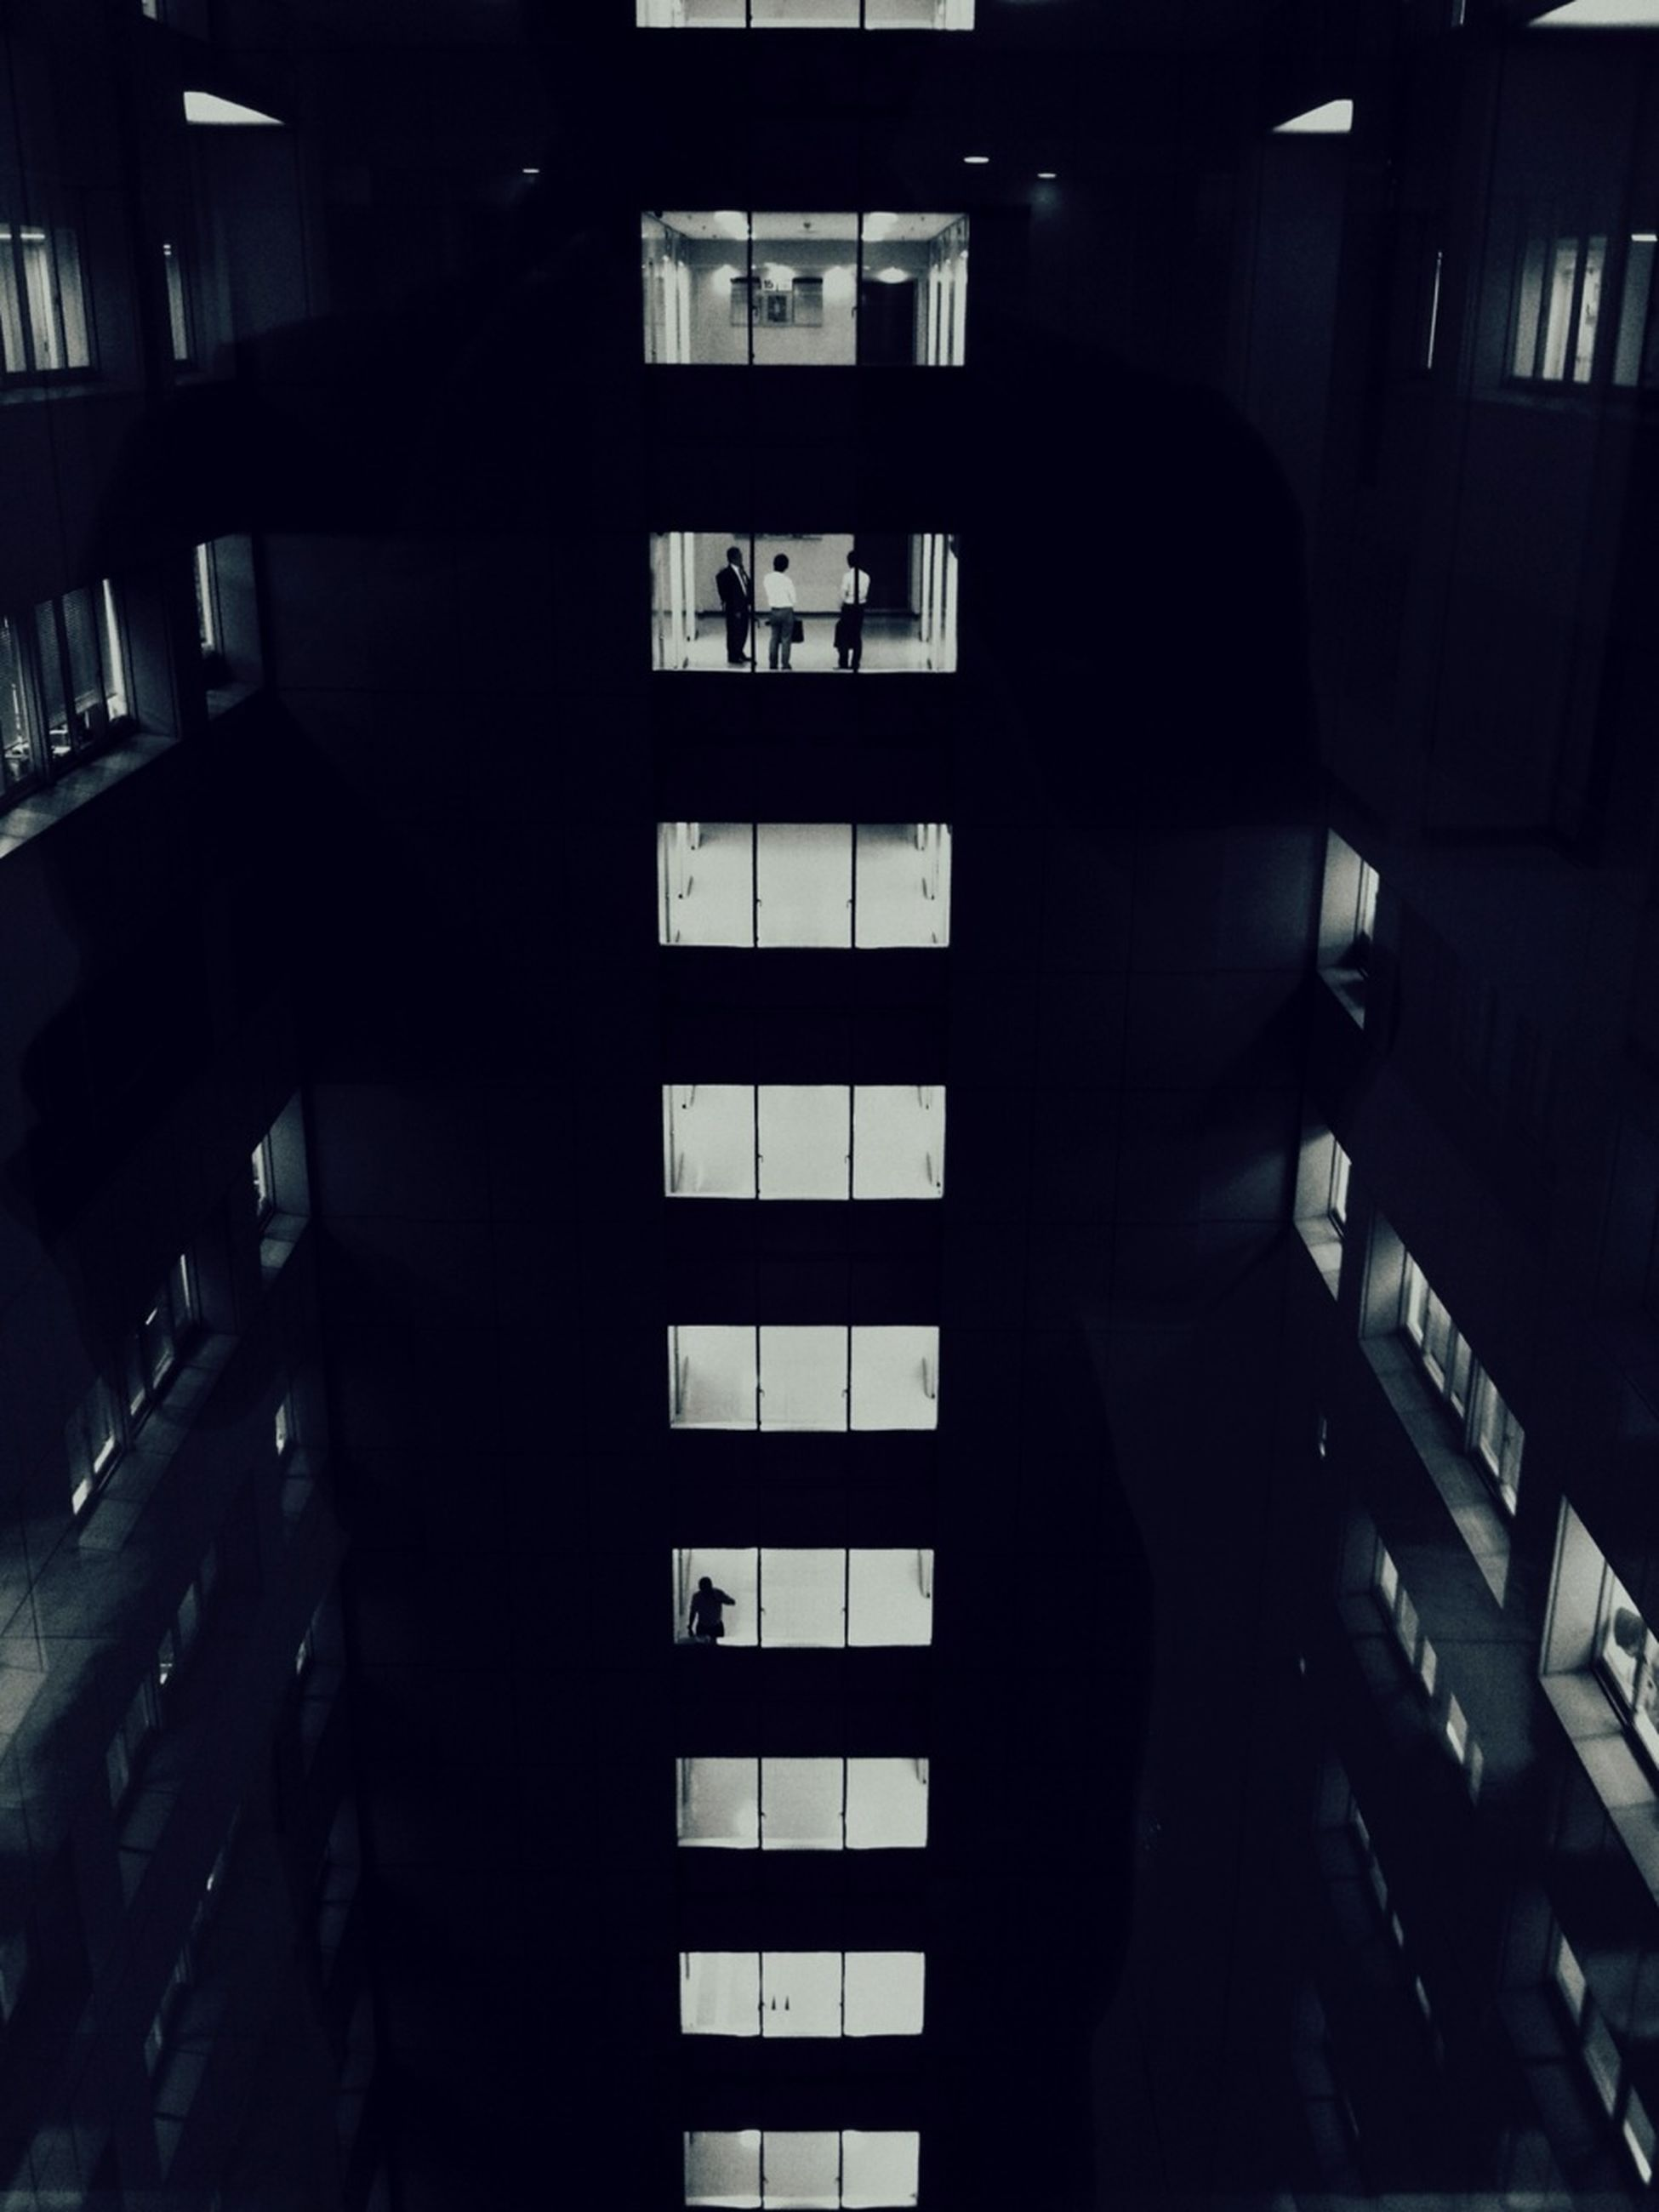 architecture, built structure, indoors, window, building exterior, building, city, reflection, illuminated, balcony, night, modern, sunlight, residential building, residential structure, dark, apartment, no people, glass - material